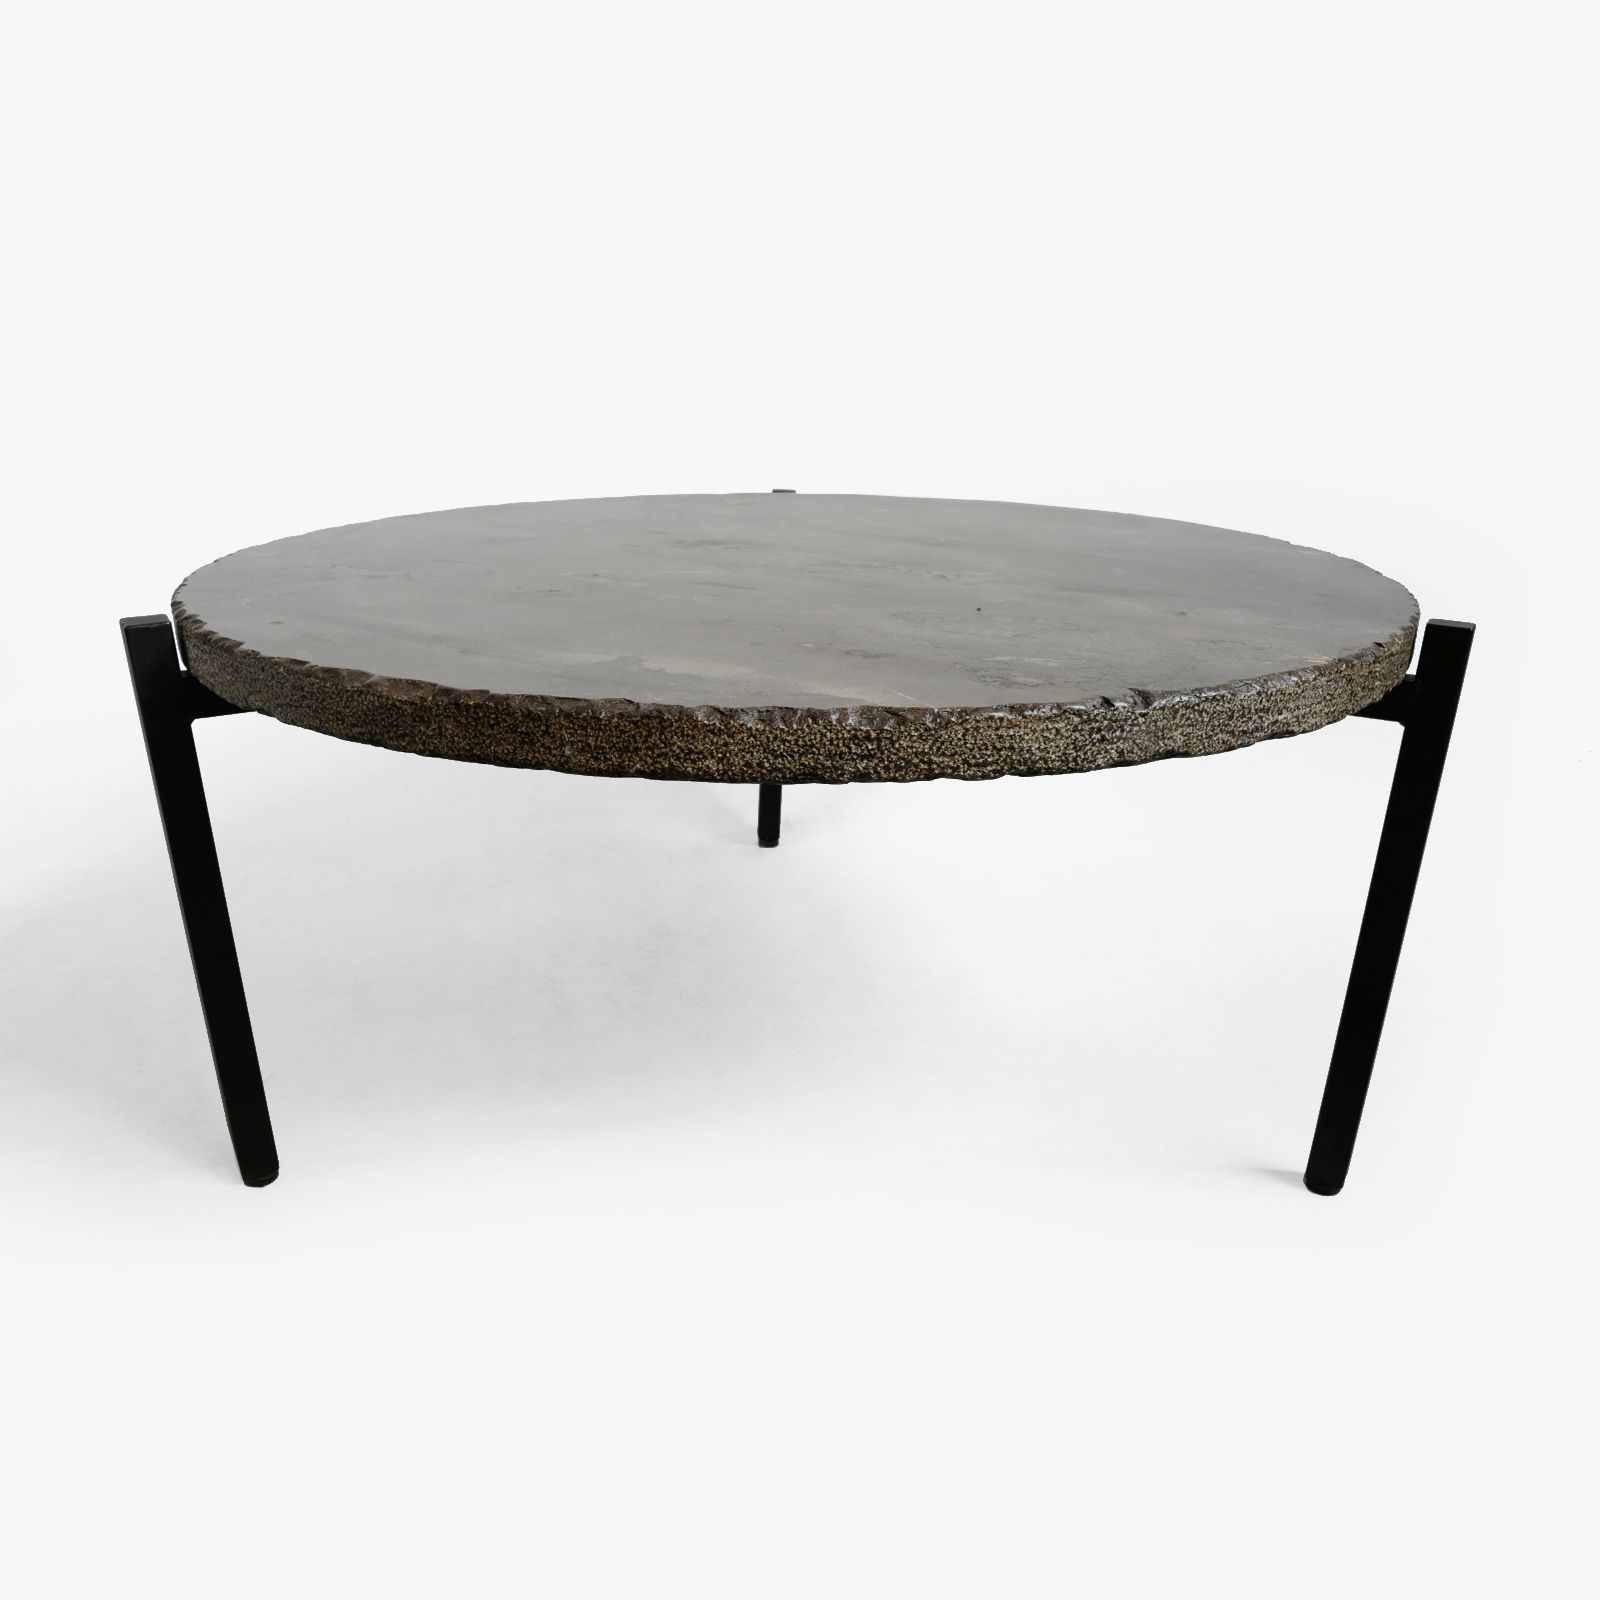 Round Marble Top And Iron Base Coffee Table Beautiful Modern Piece With Greys And Taupe Marble Gr Coffee Table Coffee Table Furniture Design Iron Coffee Table [ 1600 x 1600 Pixel ]